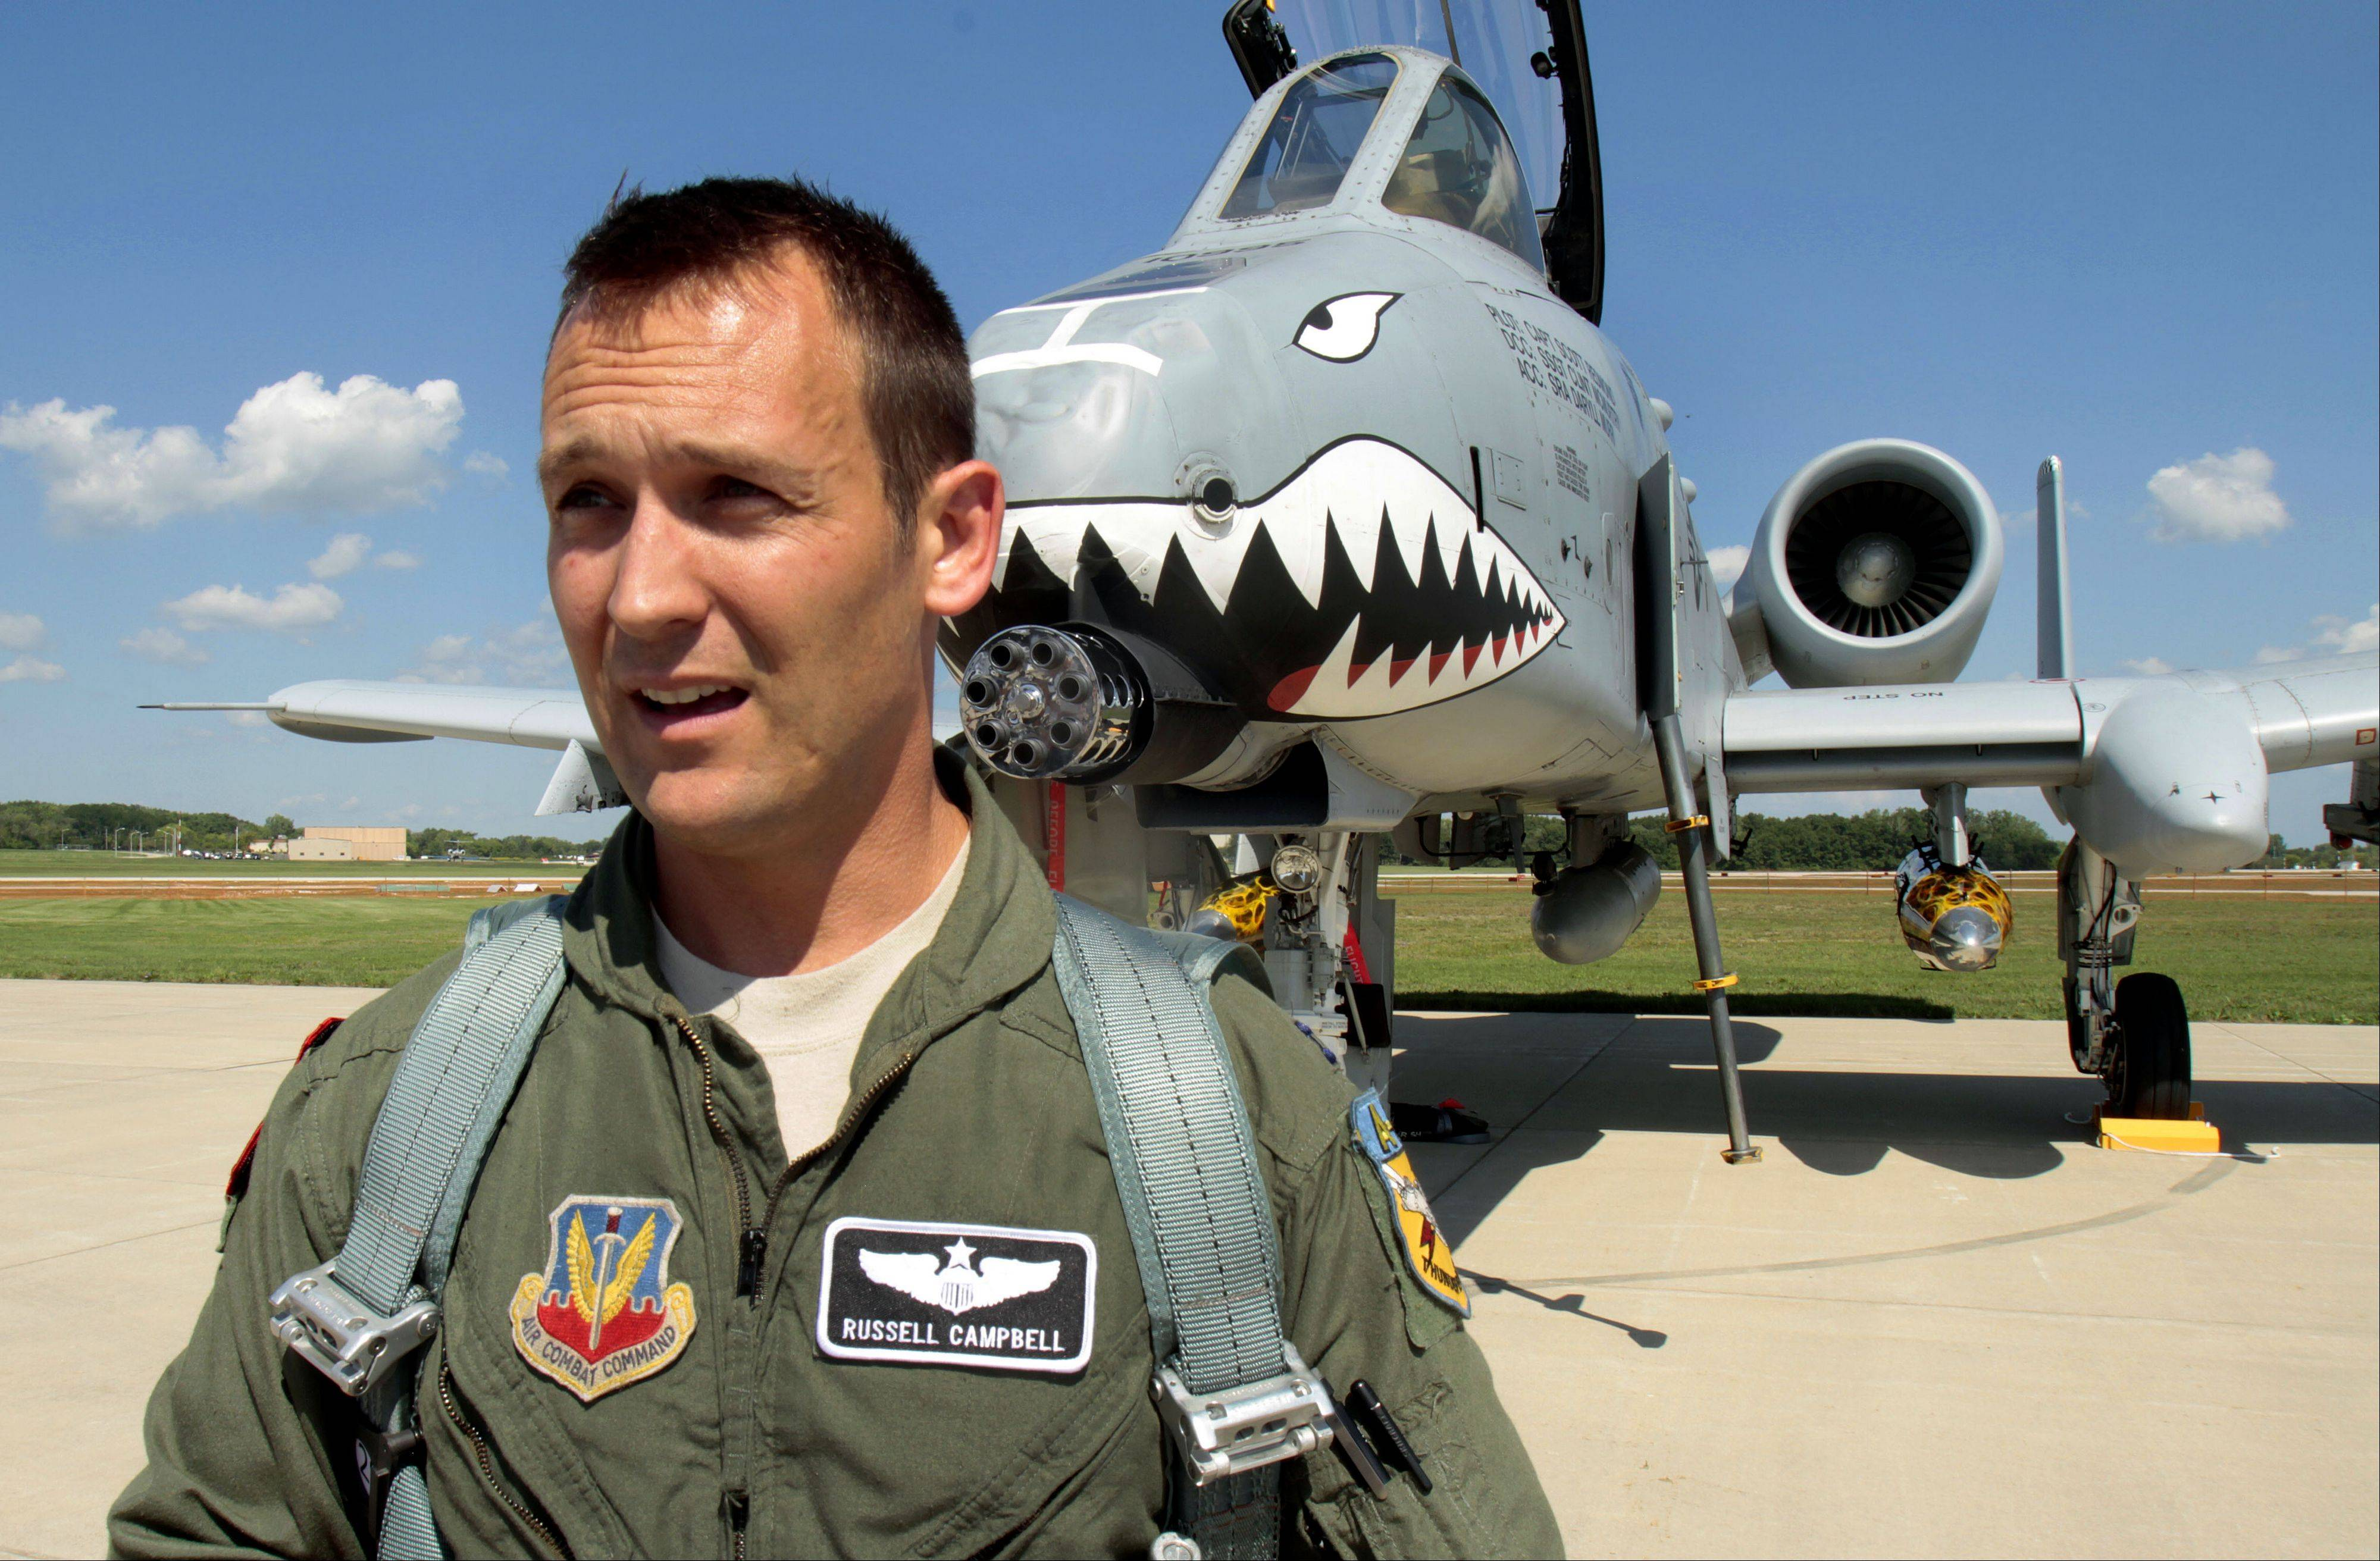 Pilot with Libertyville roots in town for air show